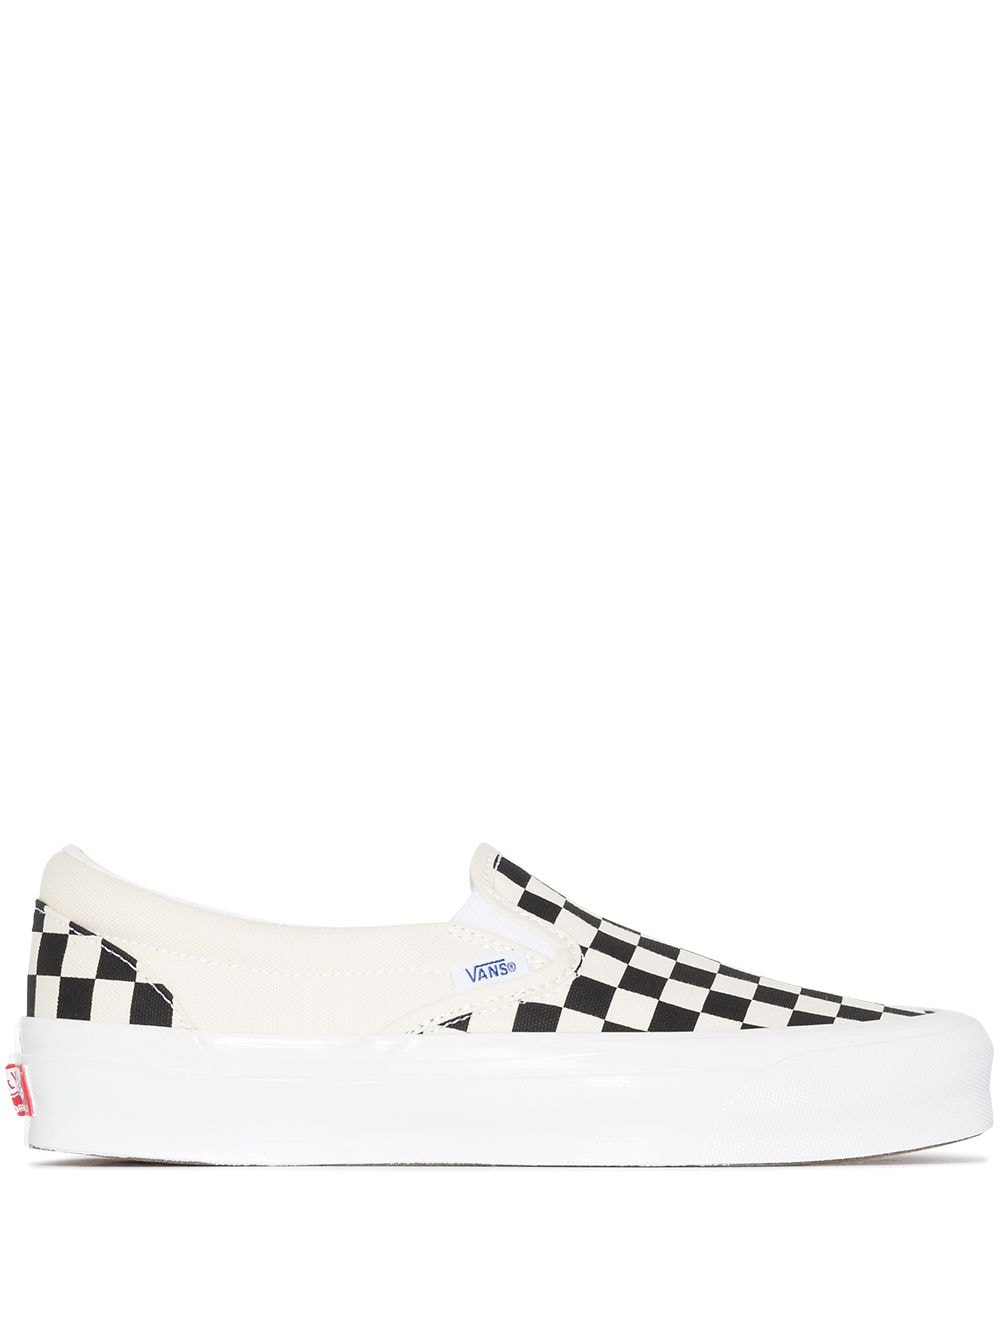 Vans Vault og classic slip on sneakers man black white VANS VAULT | Sneakers | VN0A45JKT0A1